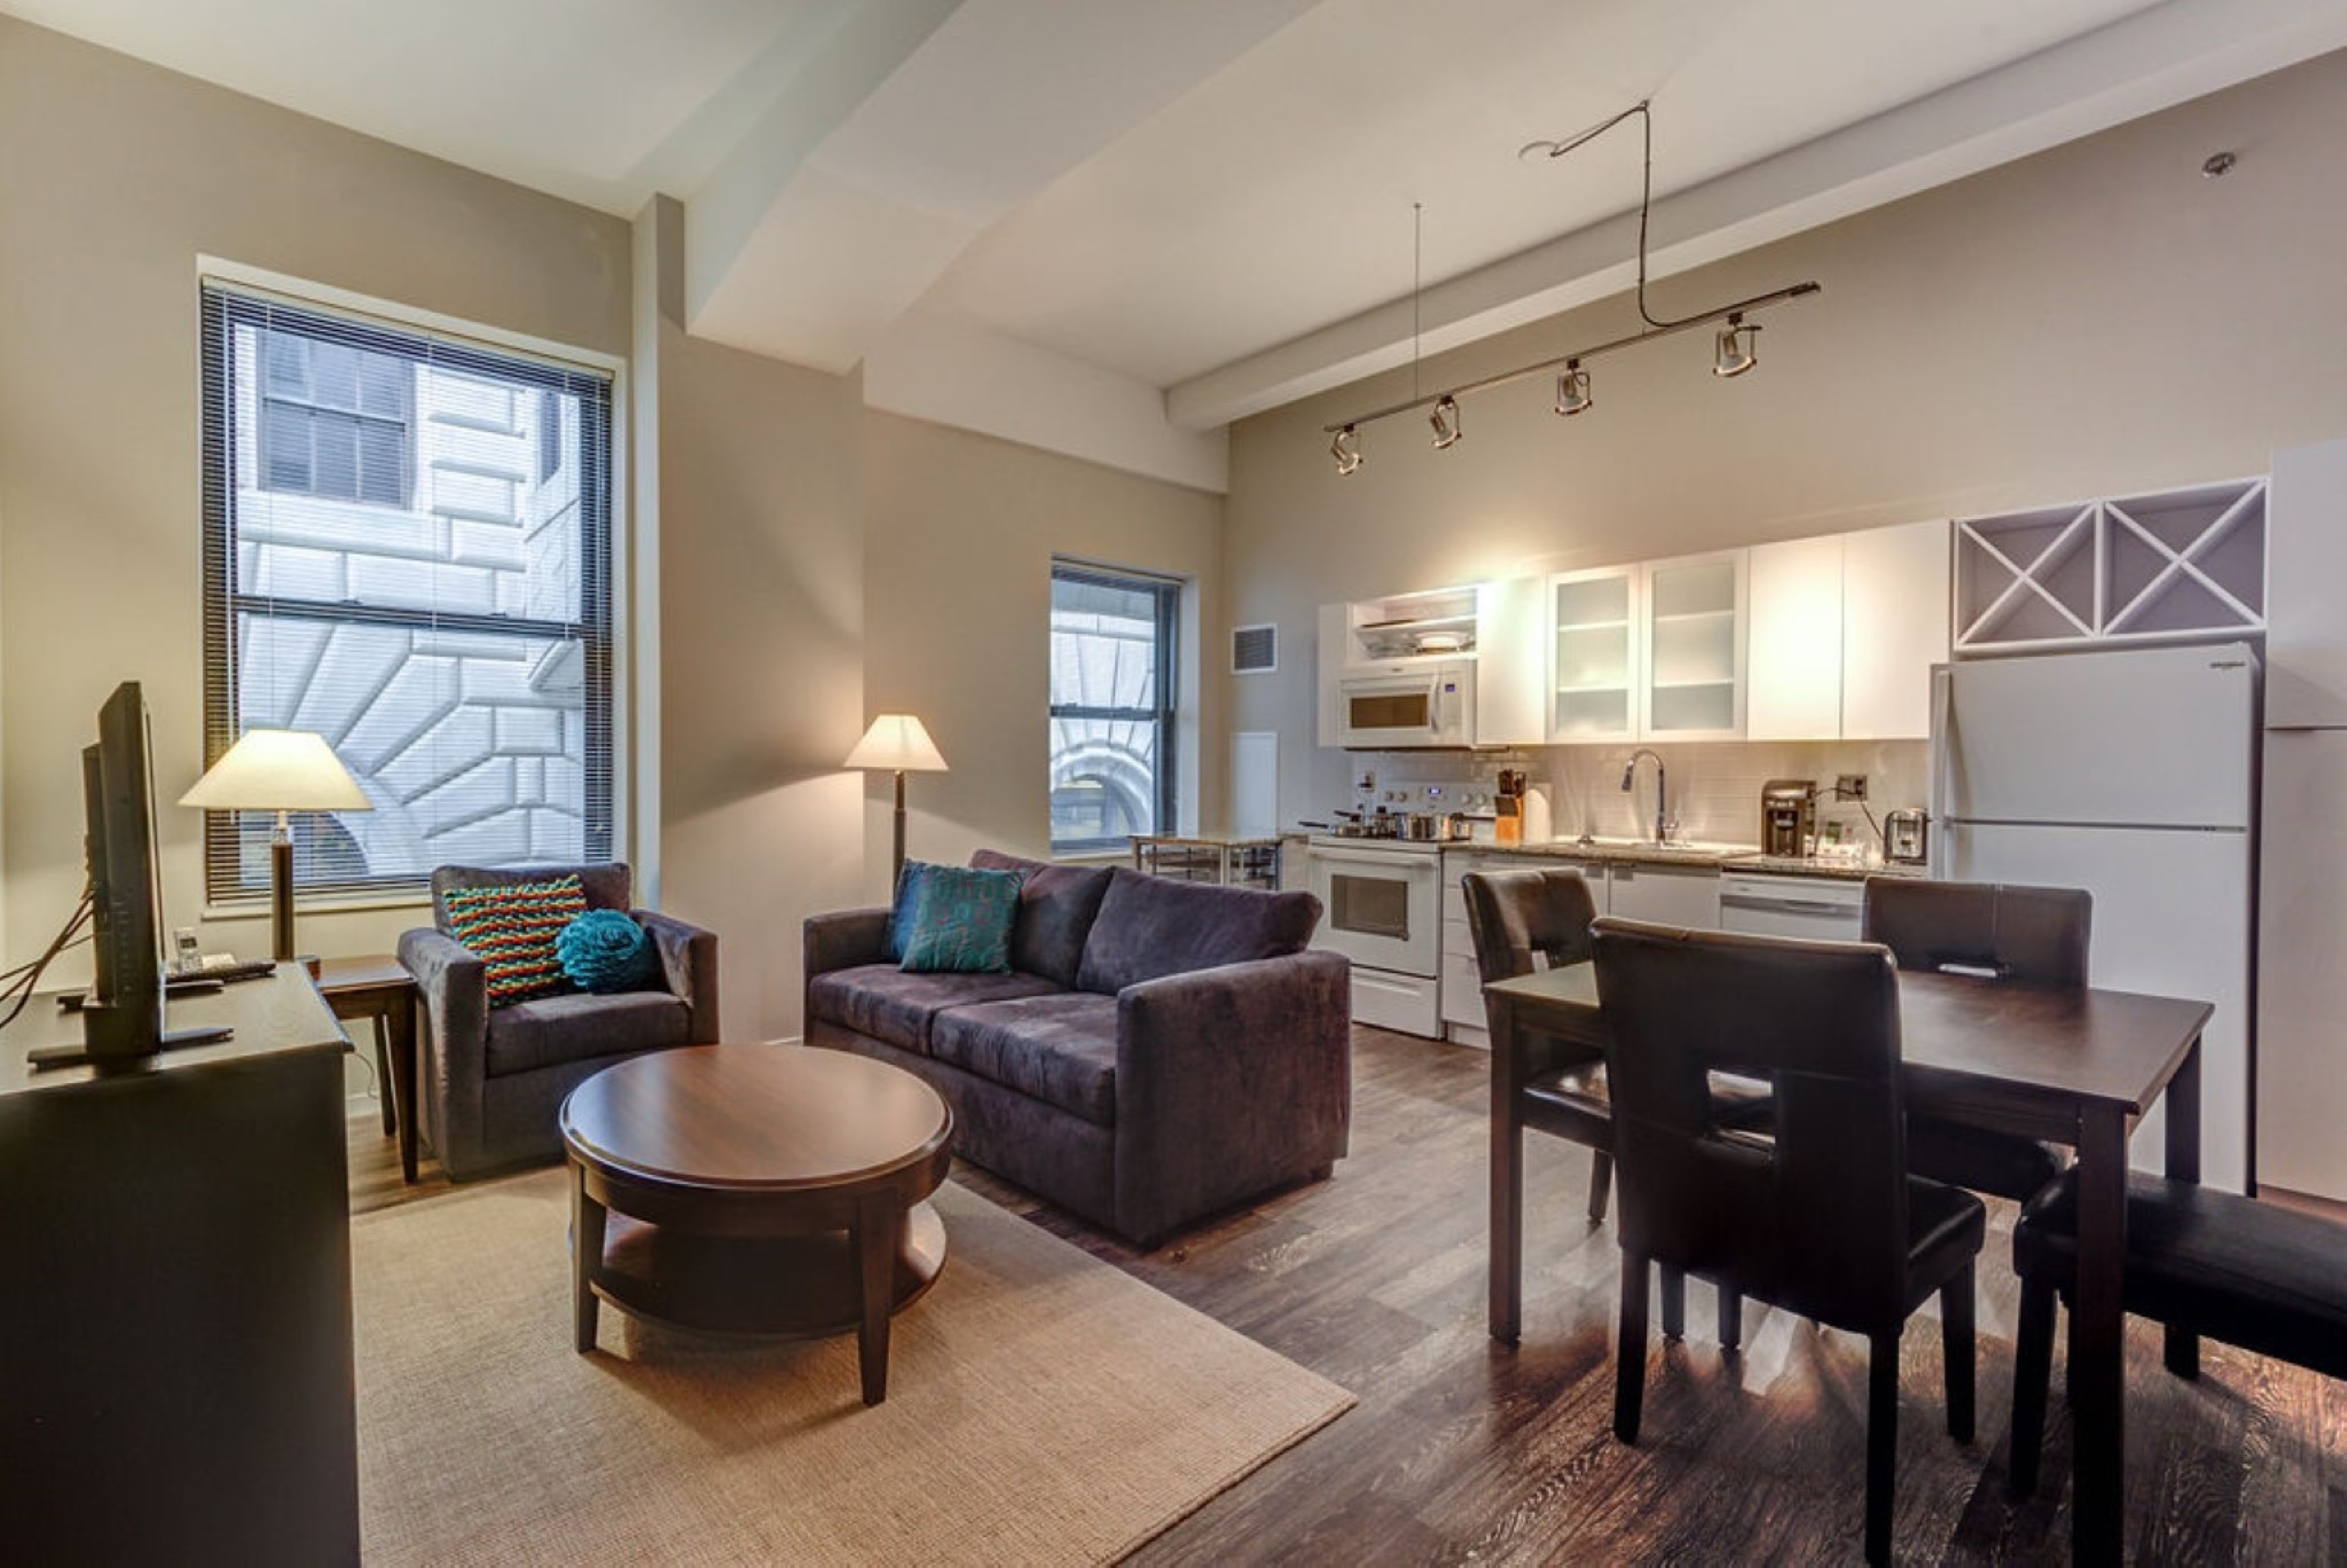 image 2 furnished 1 bedroom Apartment for rent in Downtown, Cincinnati